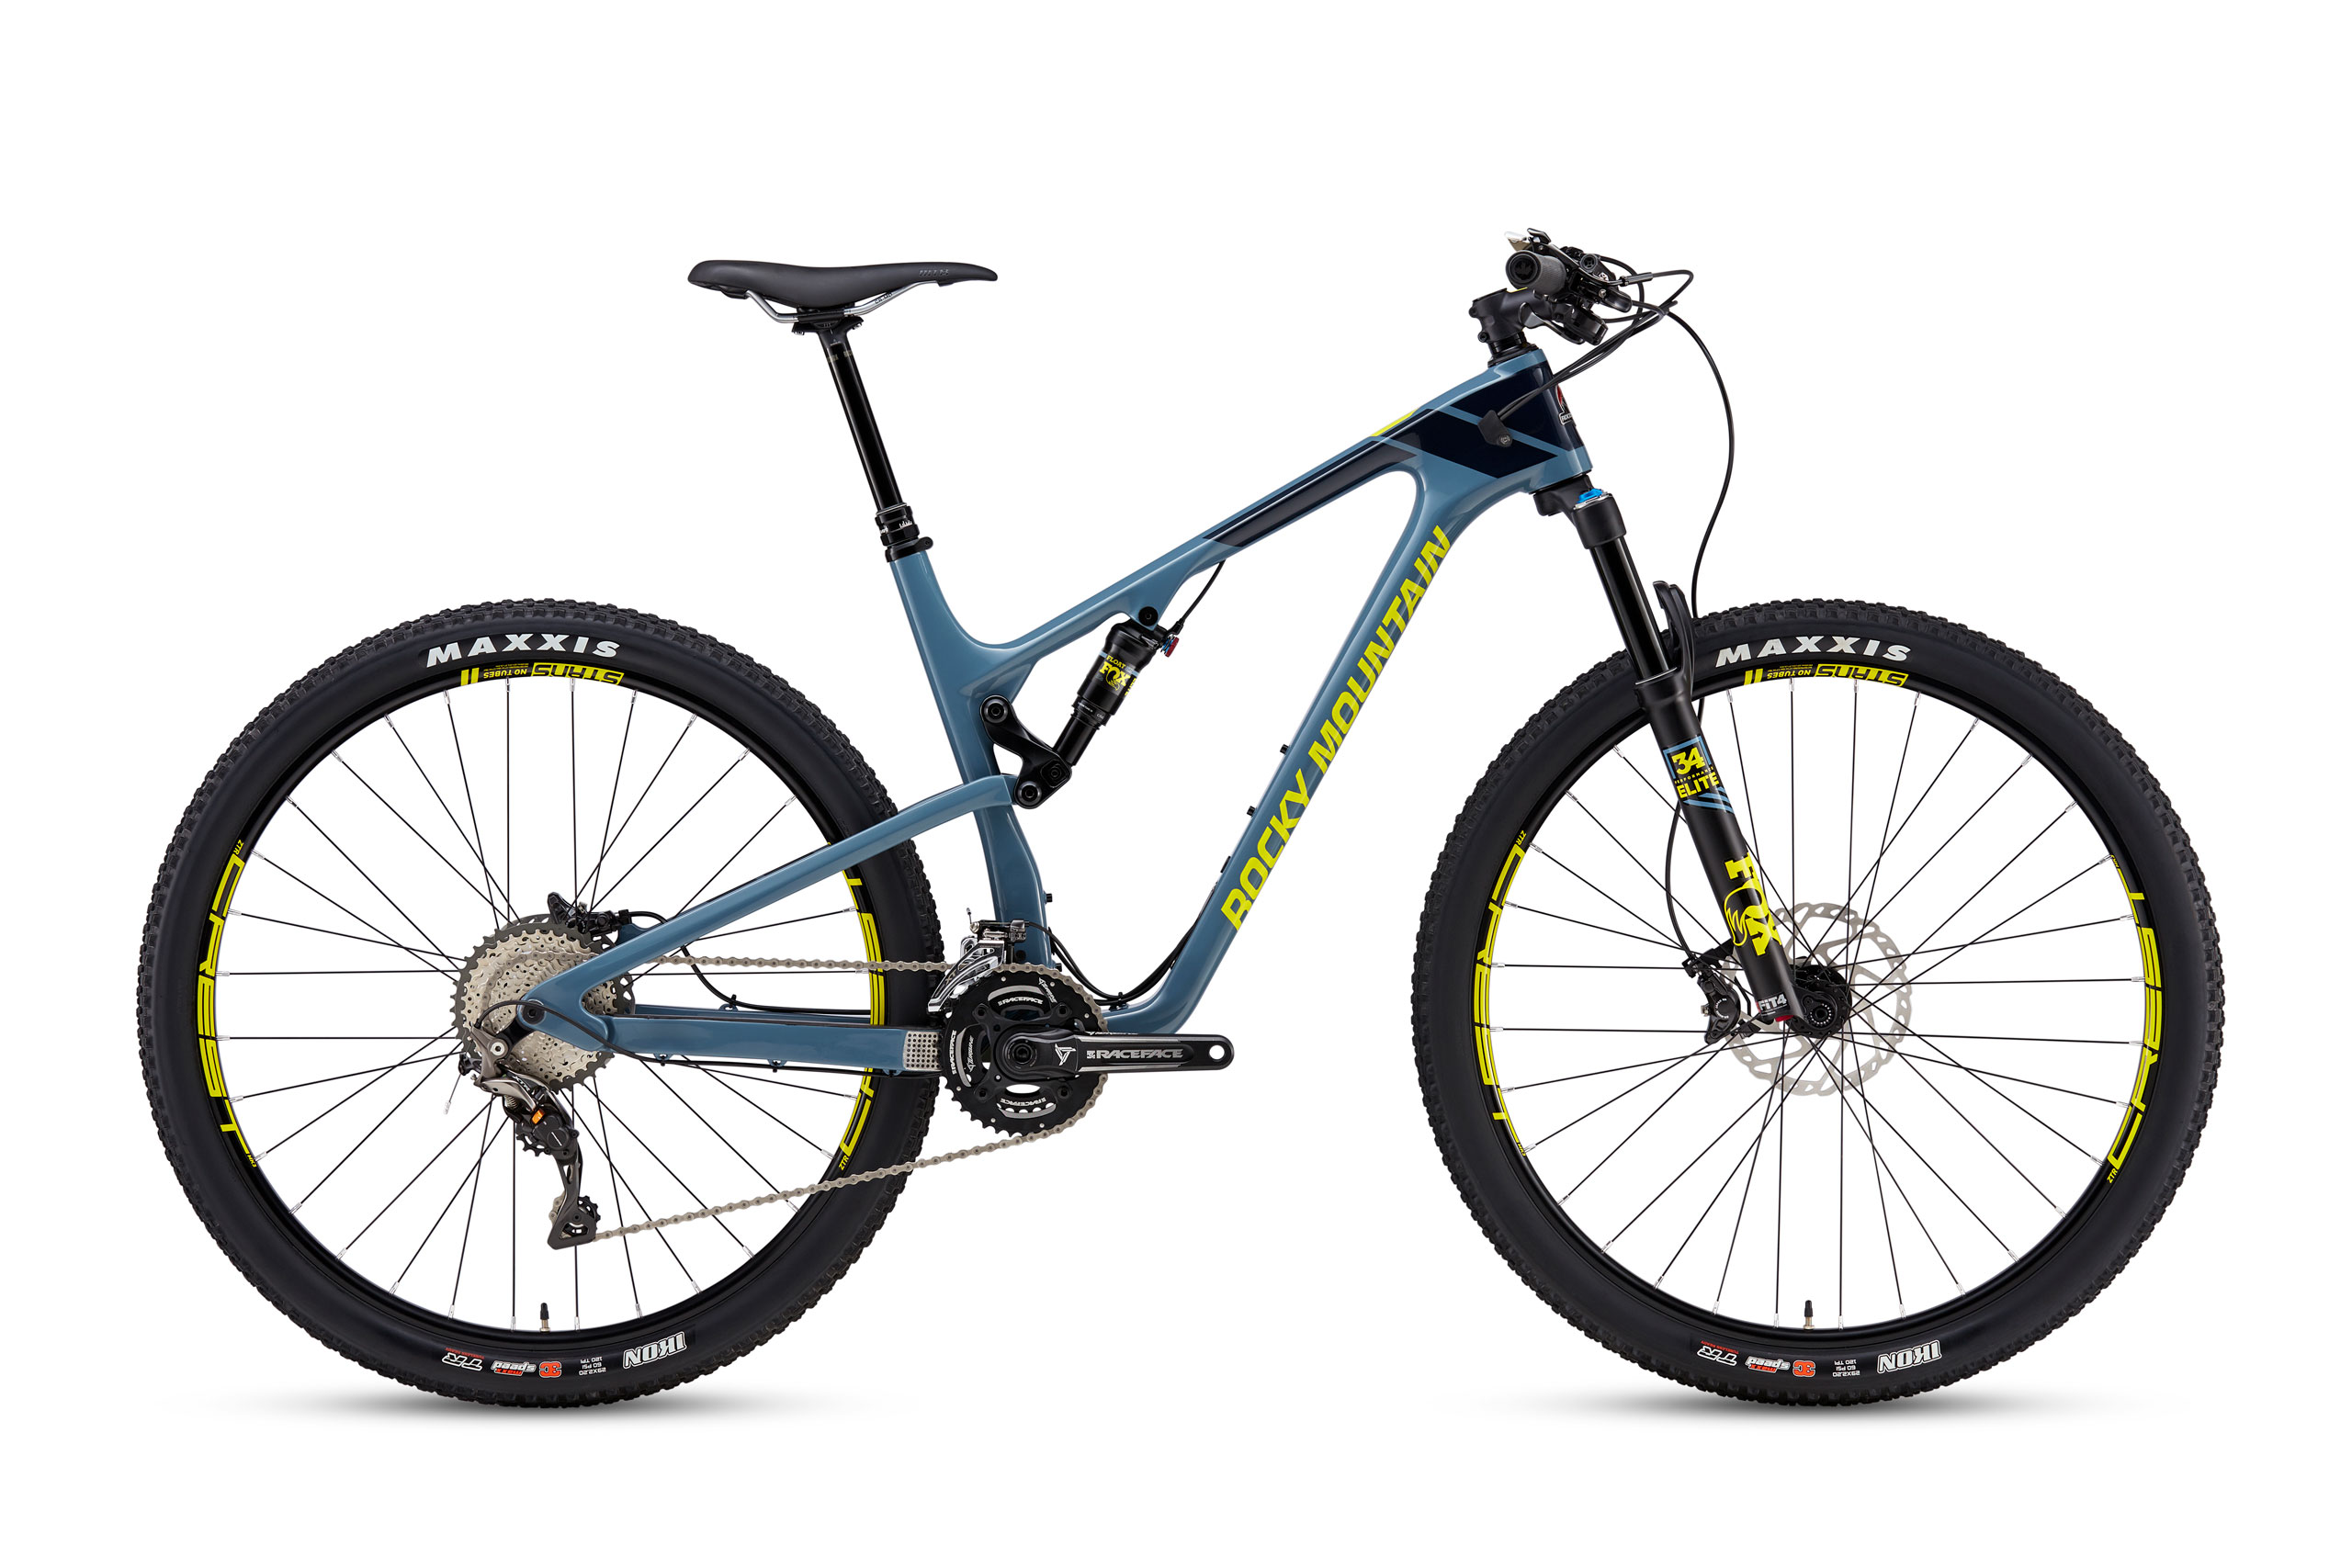 The Element is compatible with 2x drivetrains, but Rocky only spec's one model with this style of drivetrain.